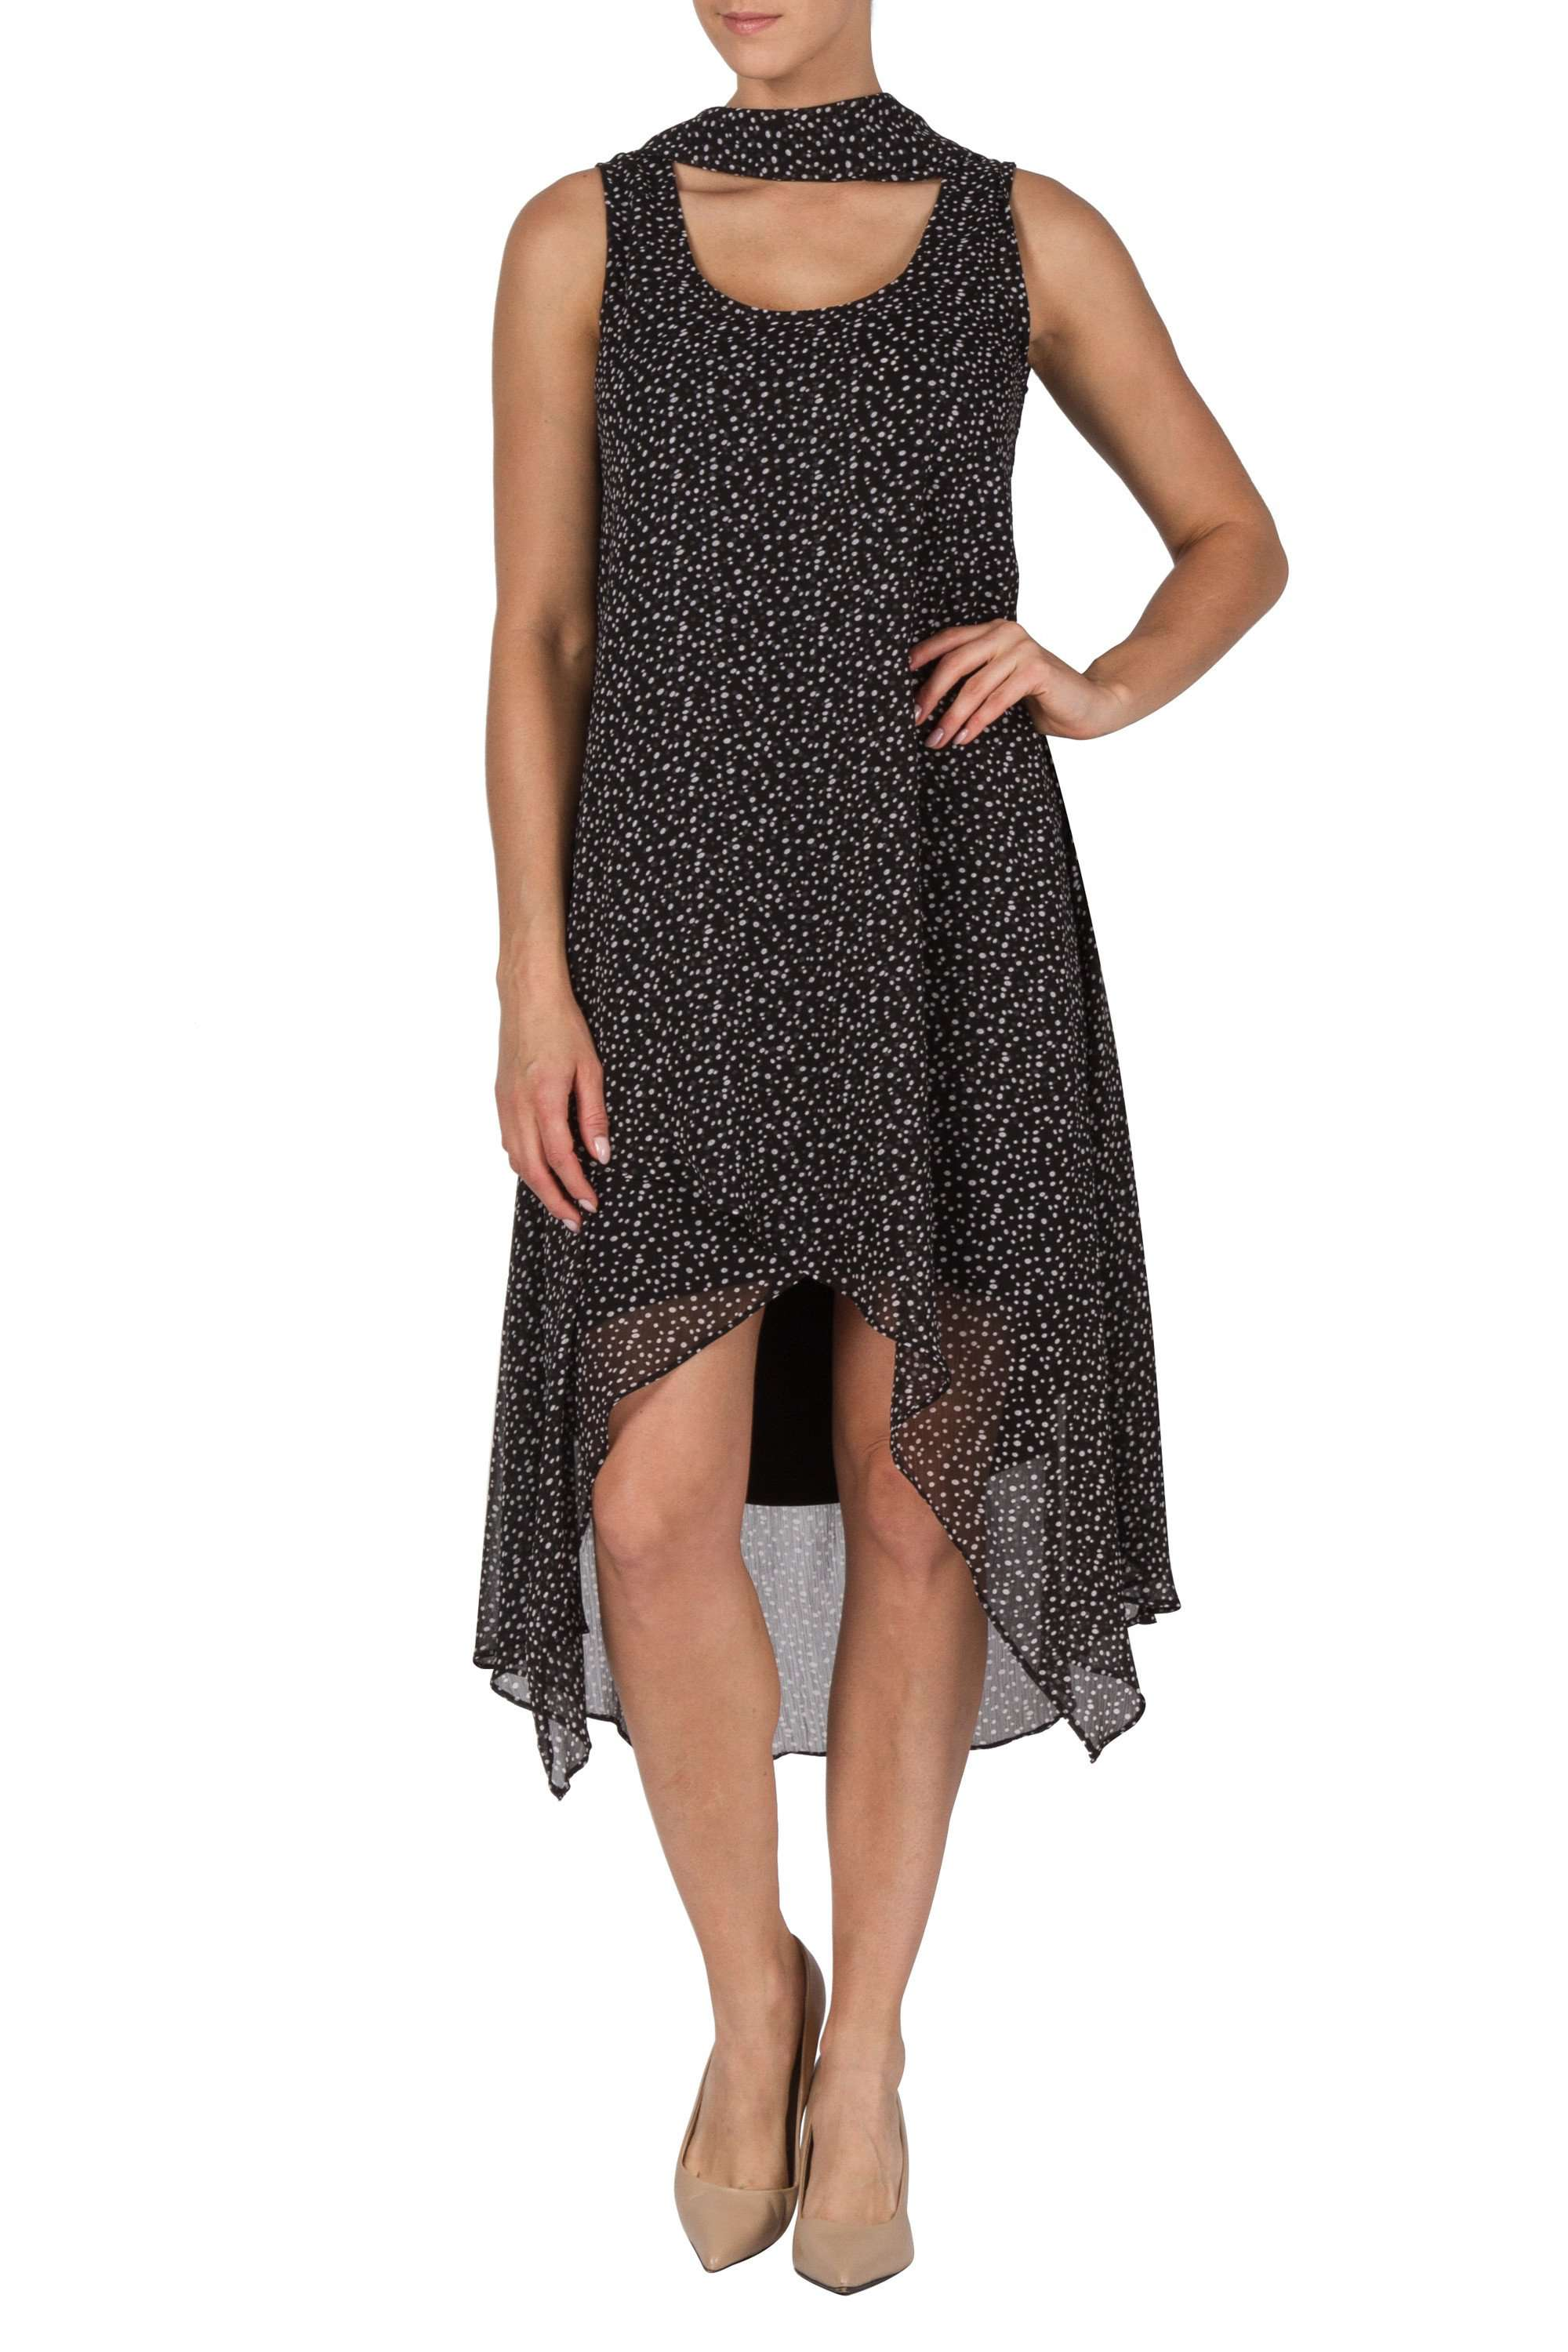 Black Long Chiffon Dress Special Occasions with small Dots - Yvonne Marie